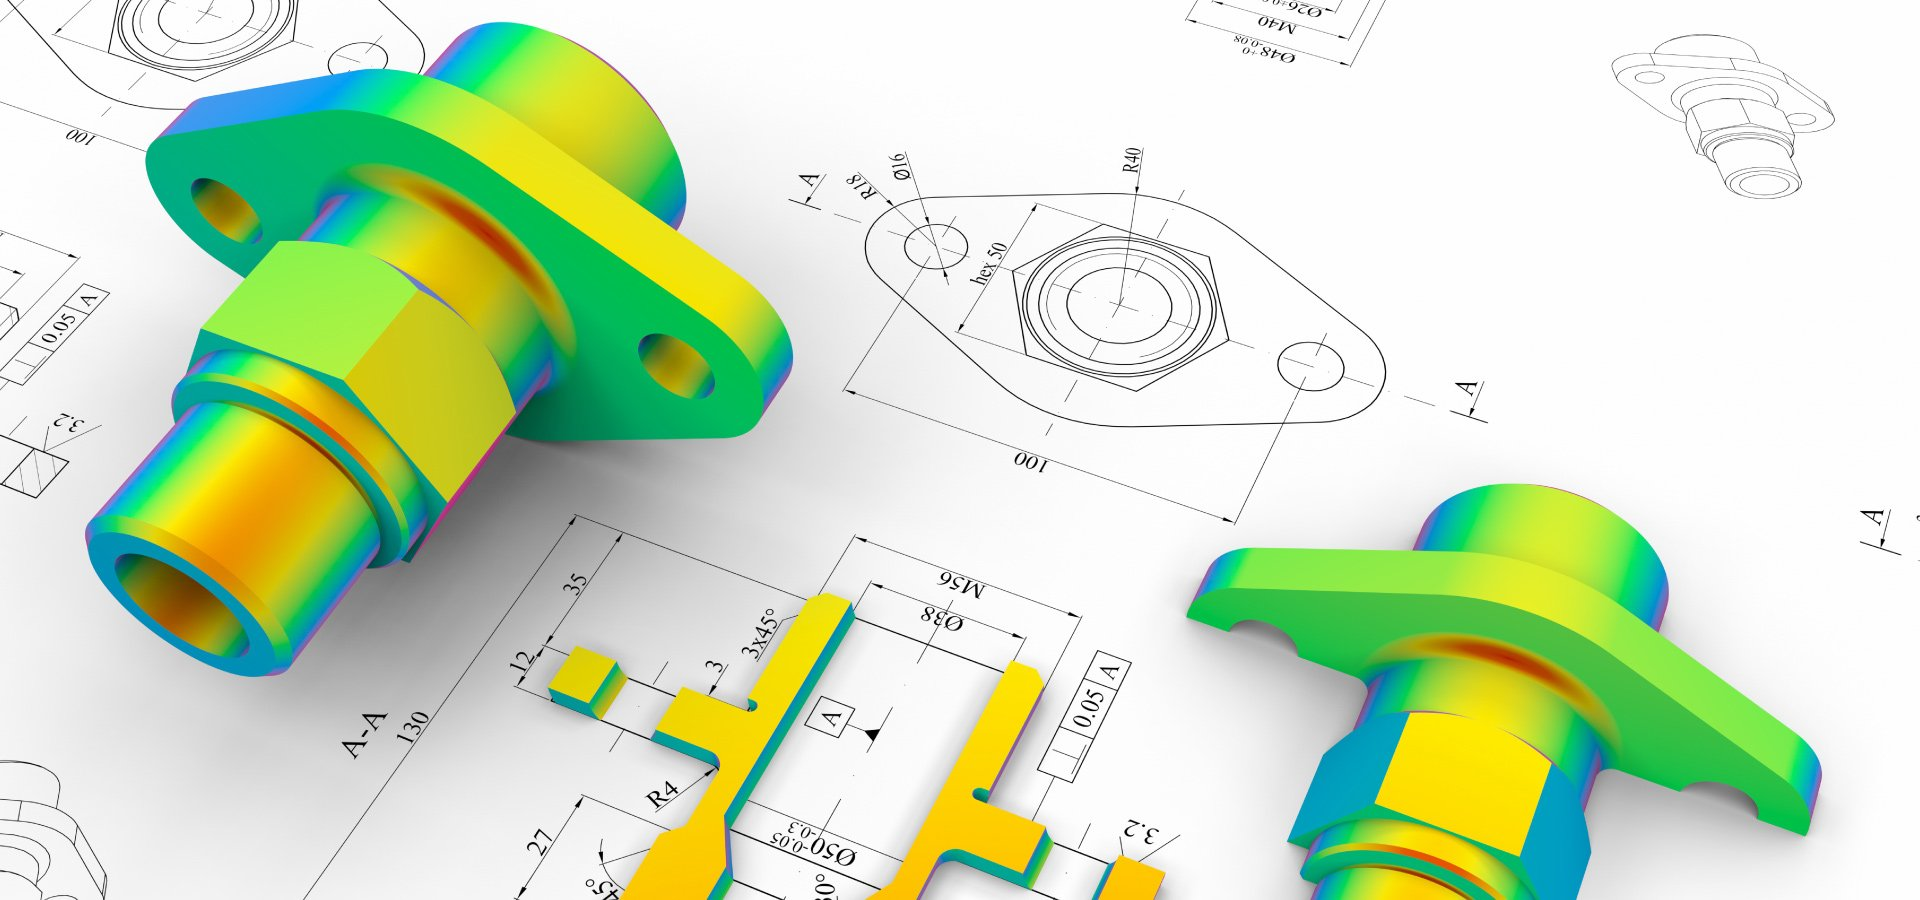 Finite element analysis In house capabilities